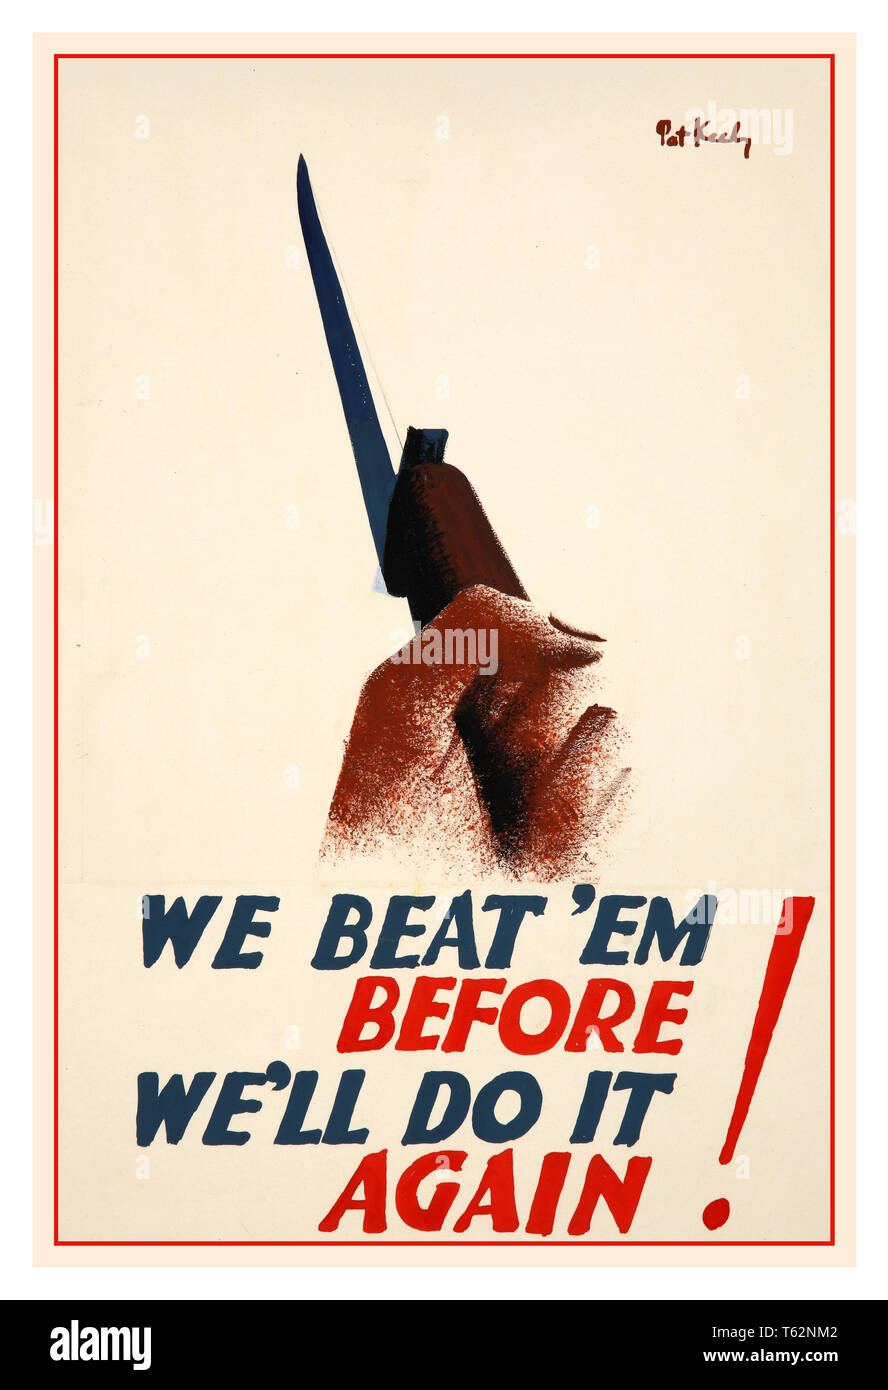 Vintage British WW2 propaganda poster 'We beat 'em before. We'll do it again!' by renowned war artist Pat Keely 1940s - Stock Image